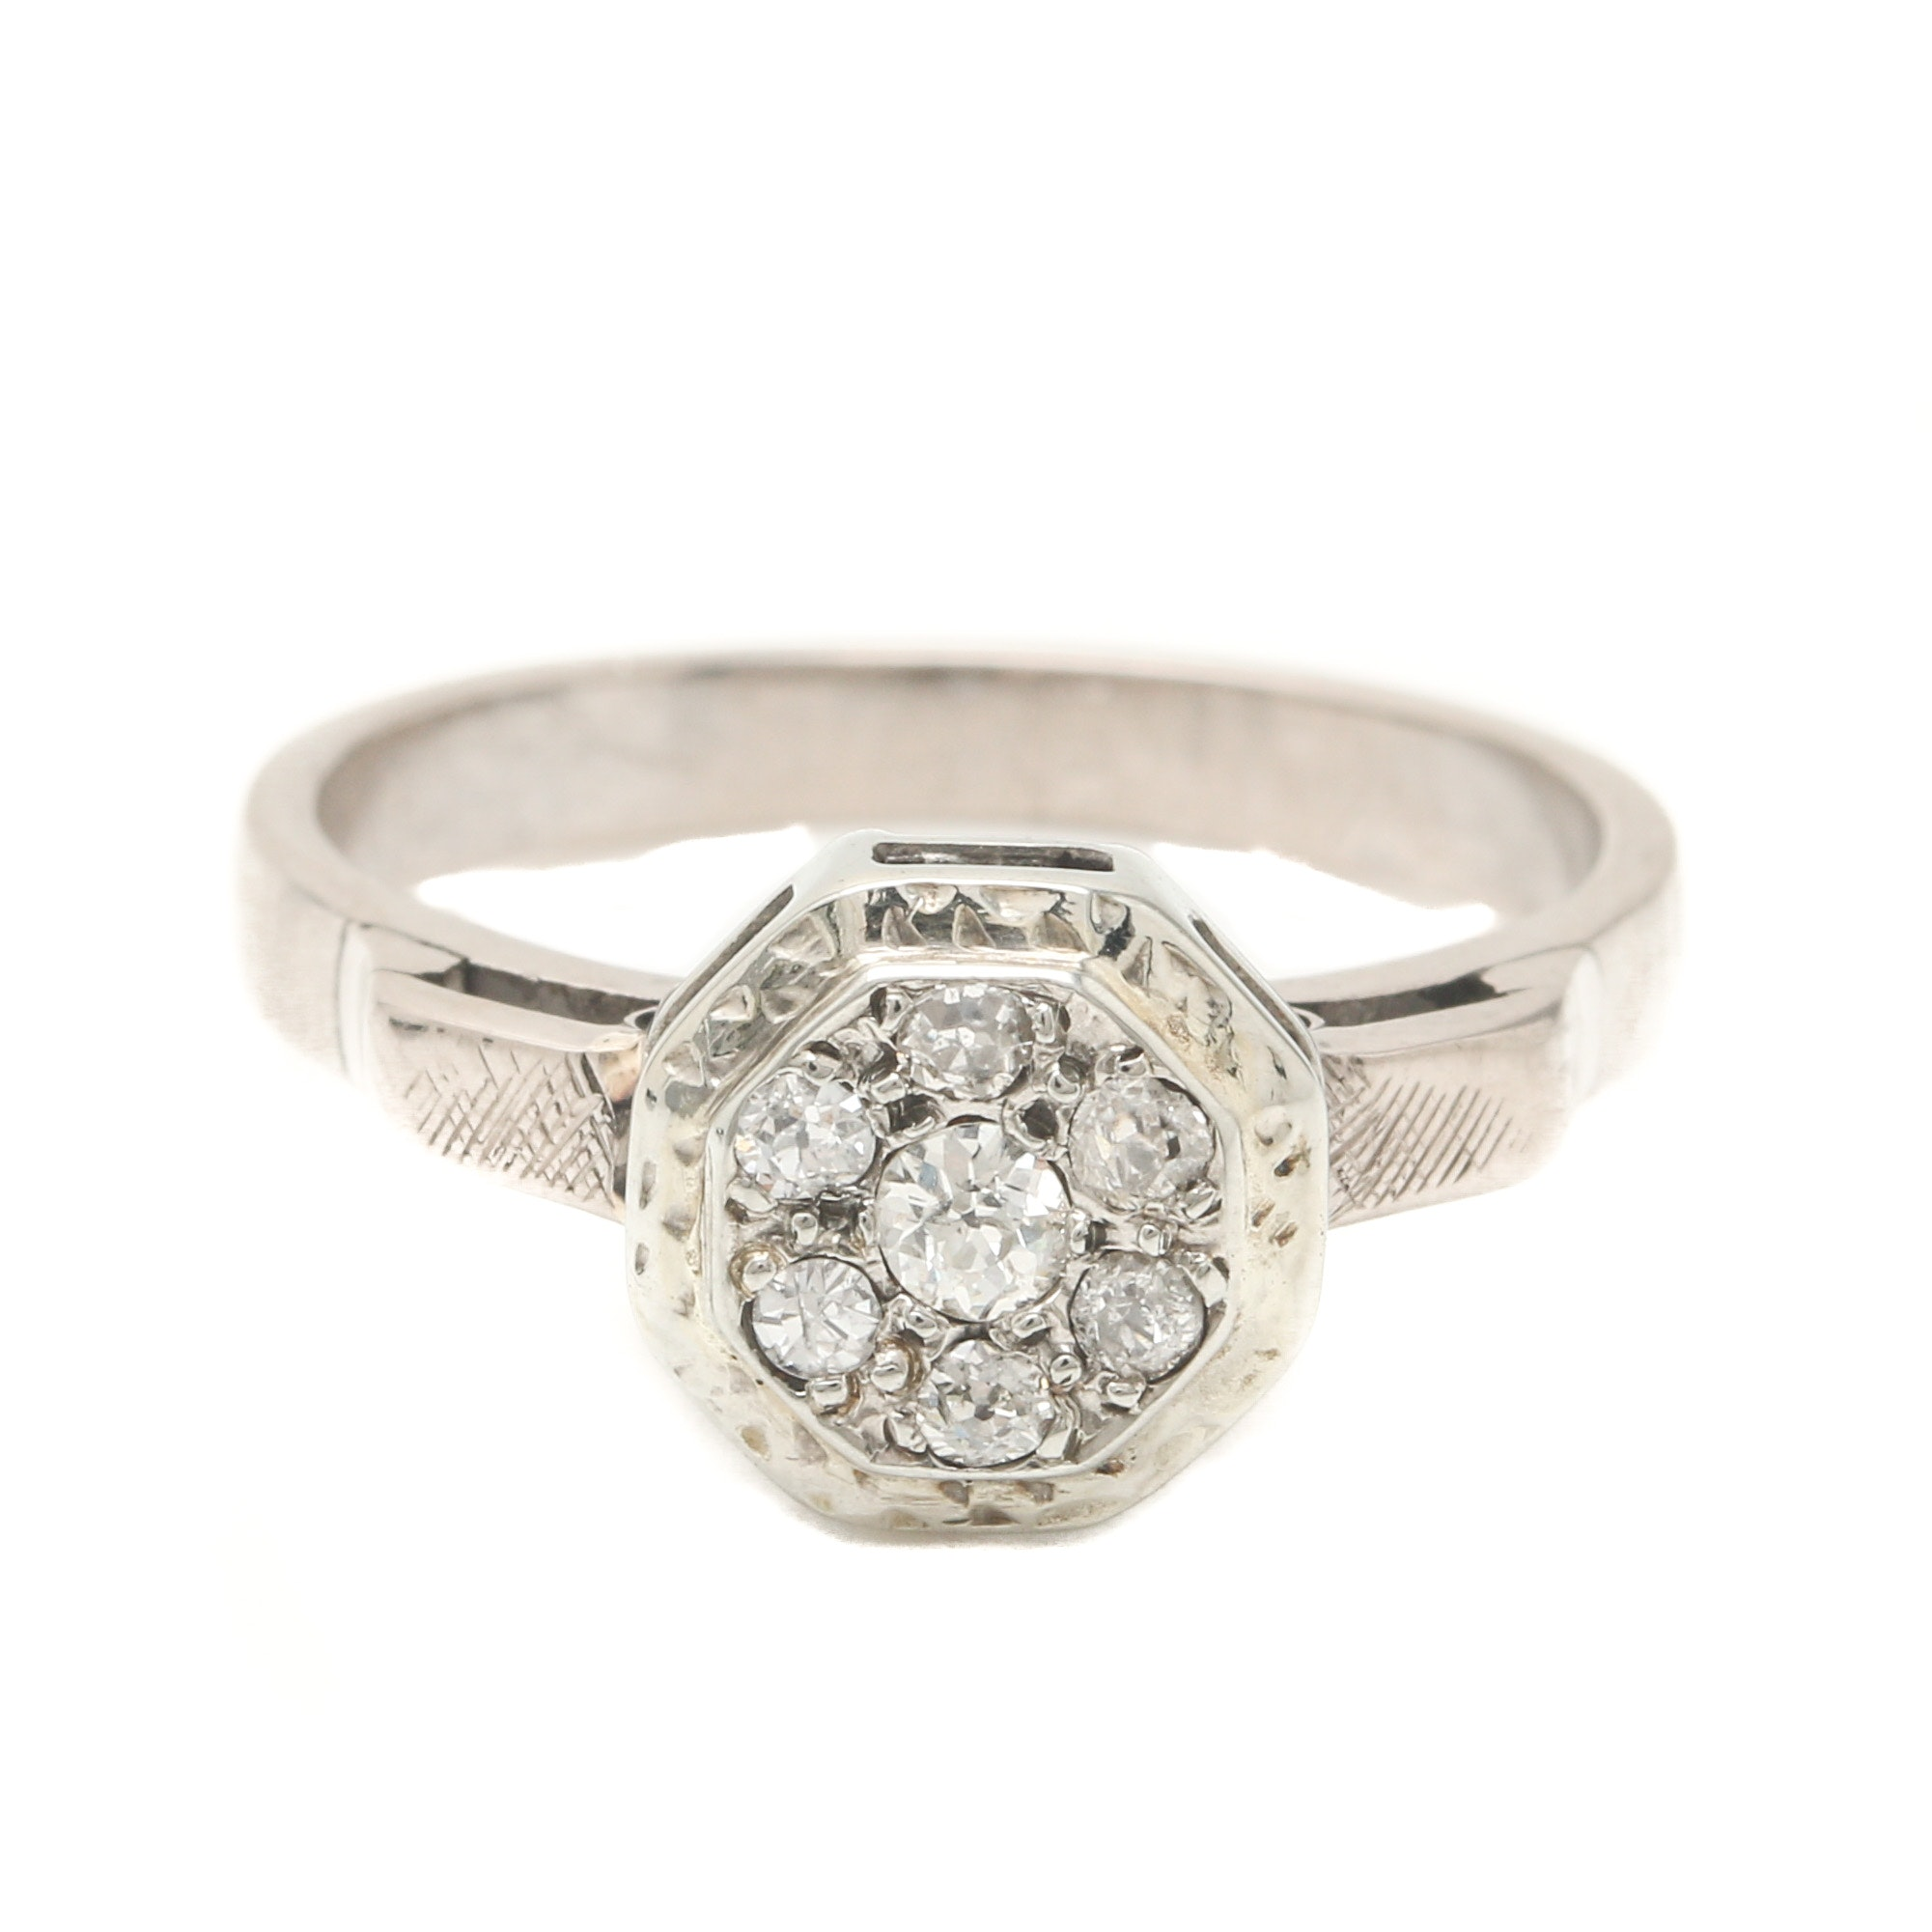 18K White Gold and Sterling Silver Palladium Alloy Diamond Ring